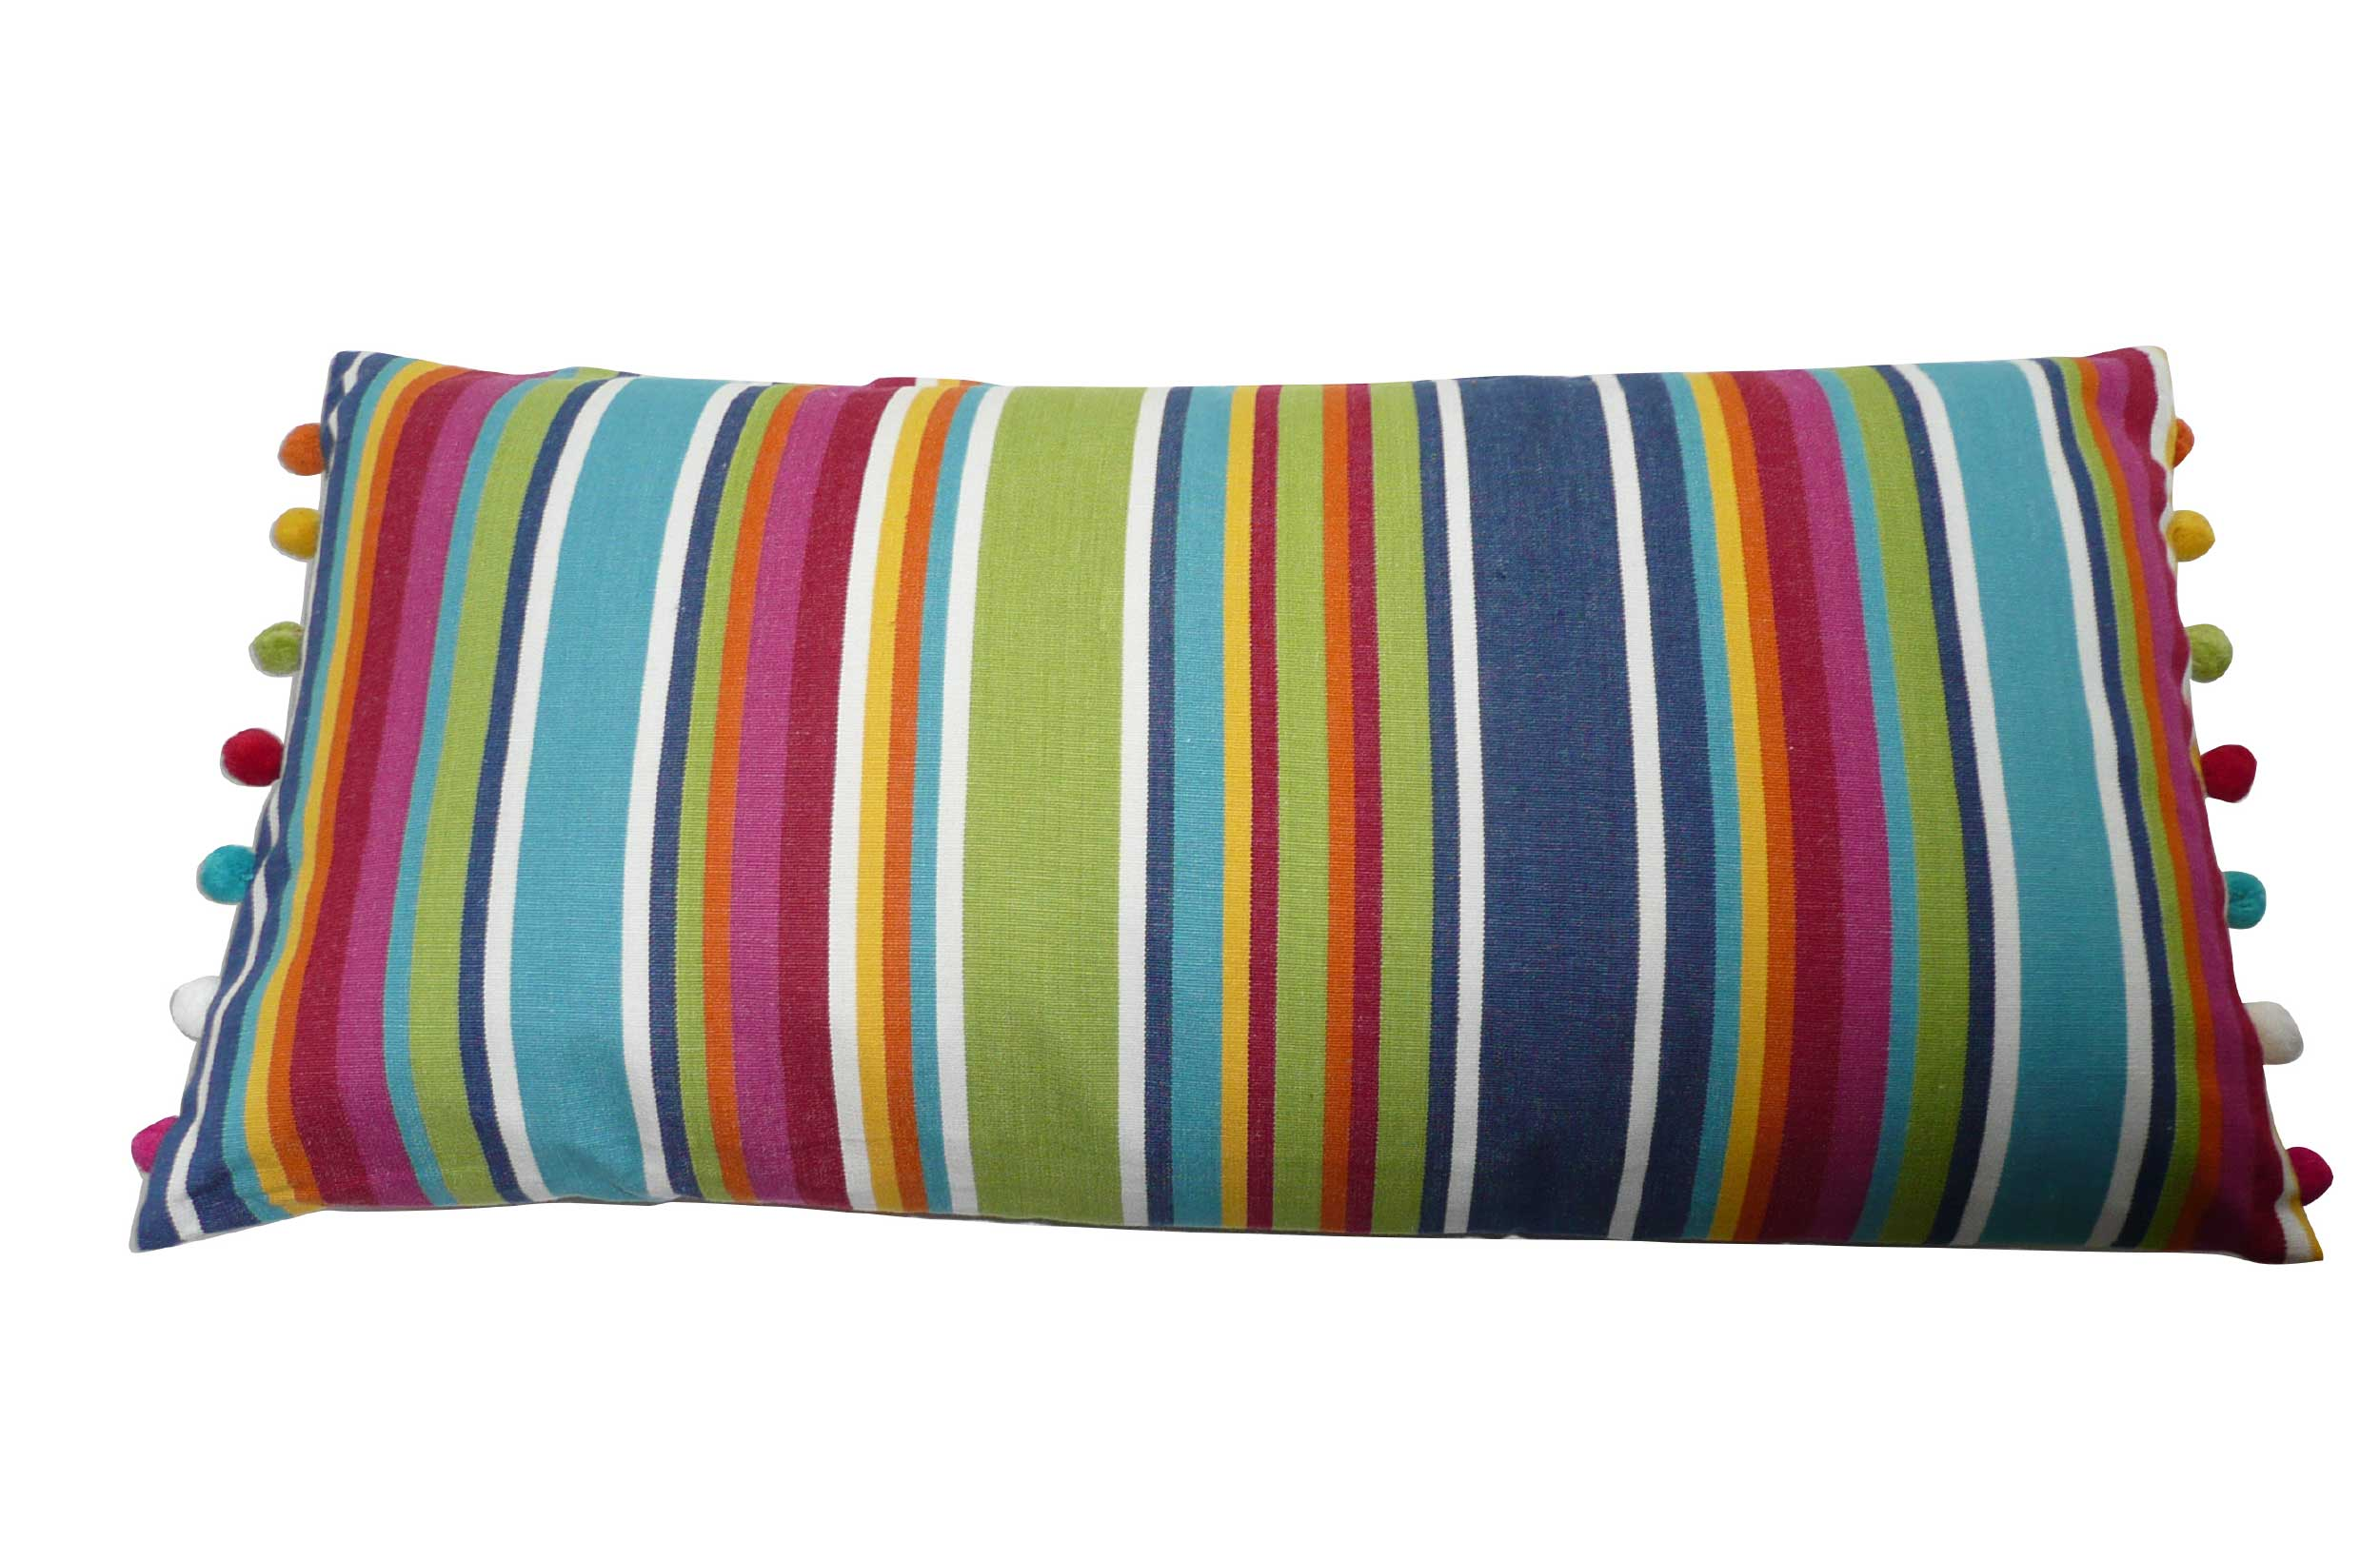 Oblong Cushions | Rainbow Striped Oblong Cushions with bobble fringe